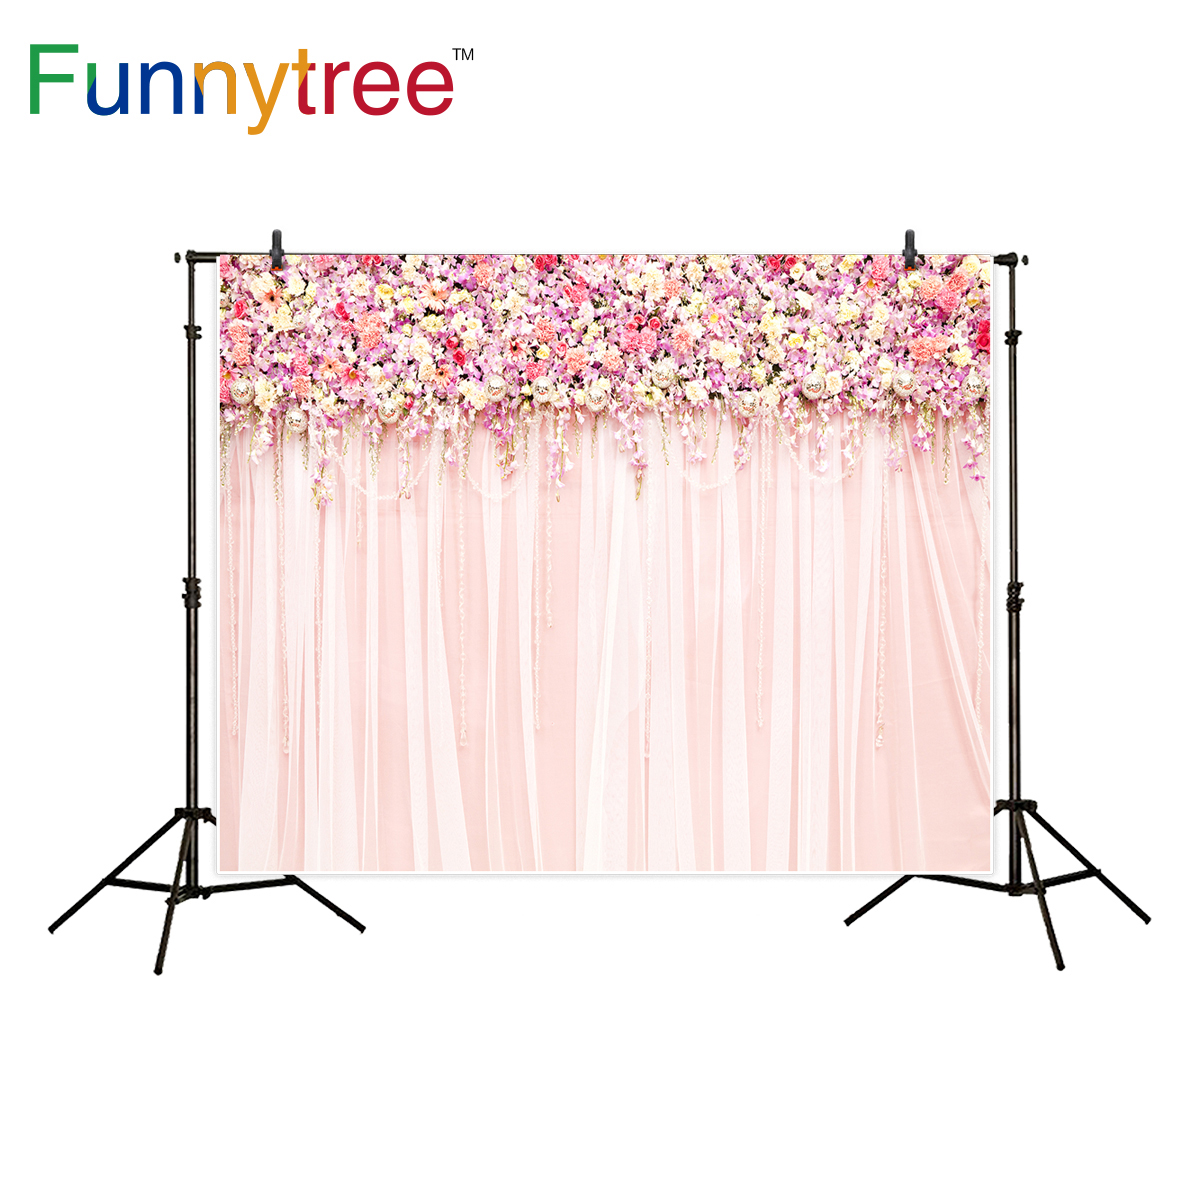 Funnytree photography background wedding flower pink decor wall sweet  backdrop photocall photo studio printed